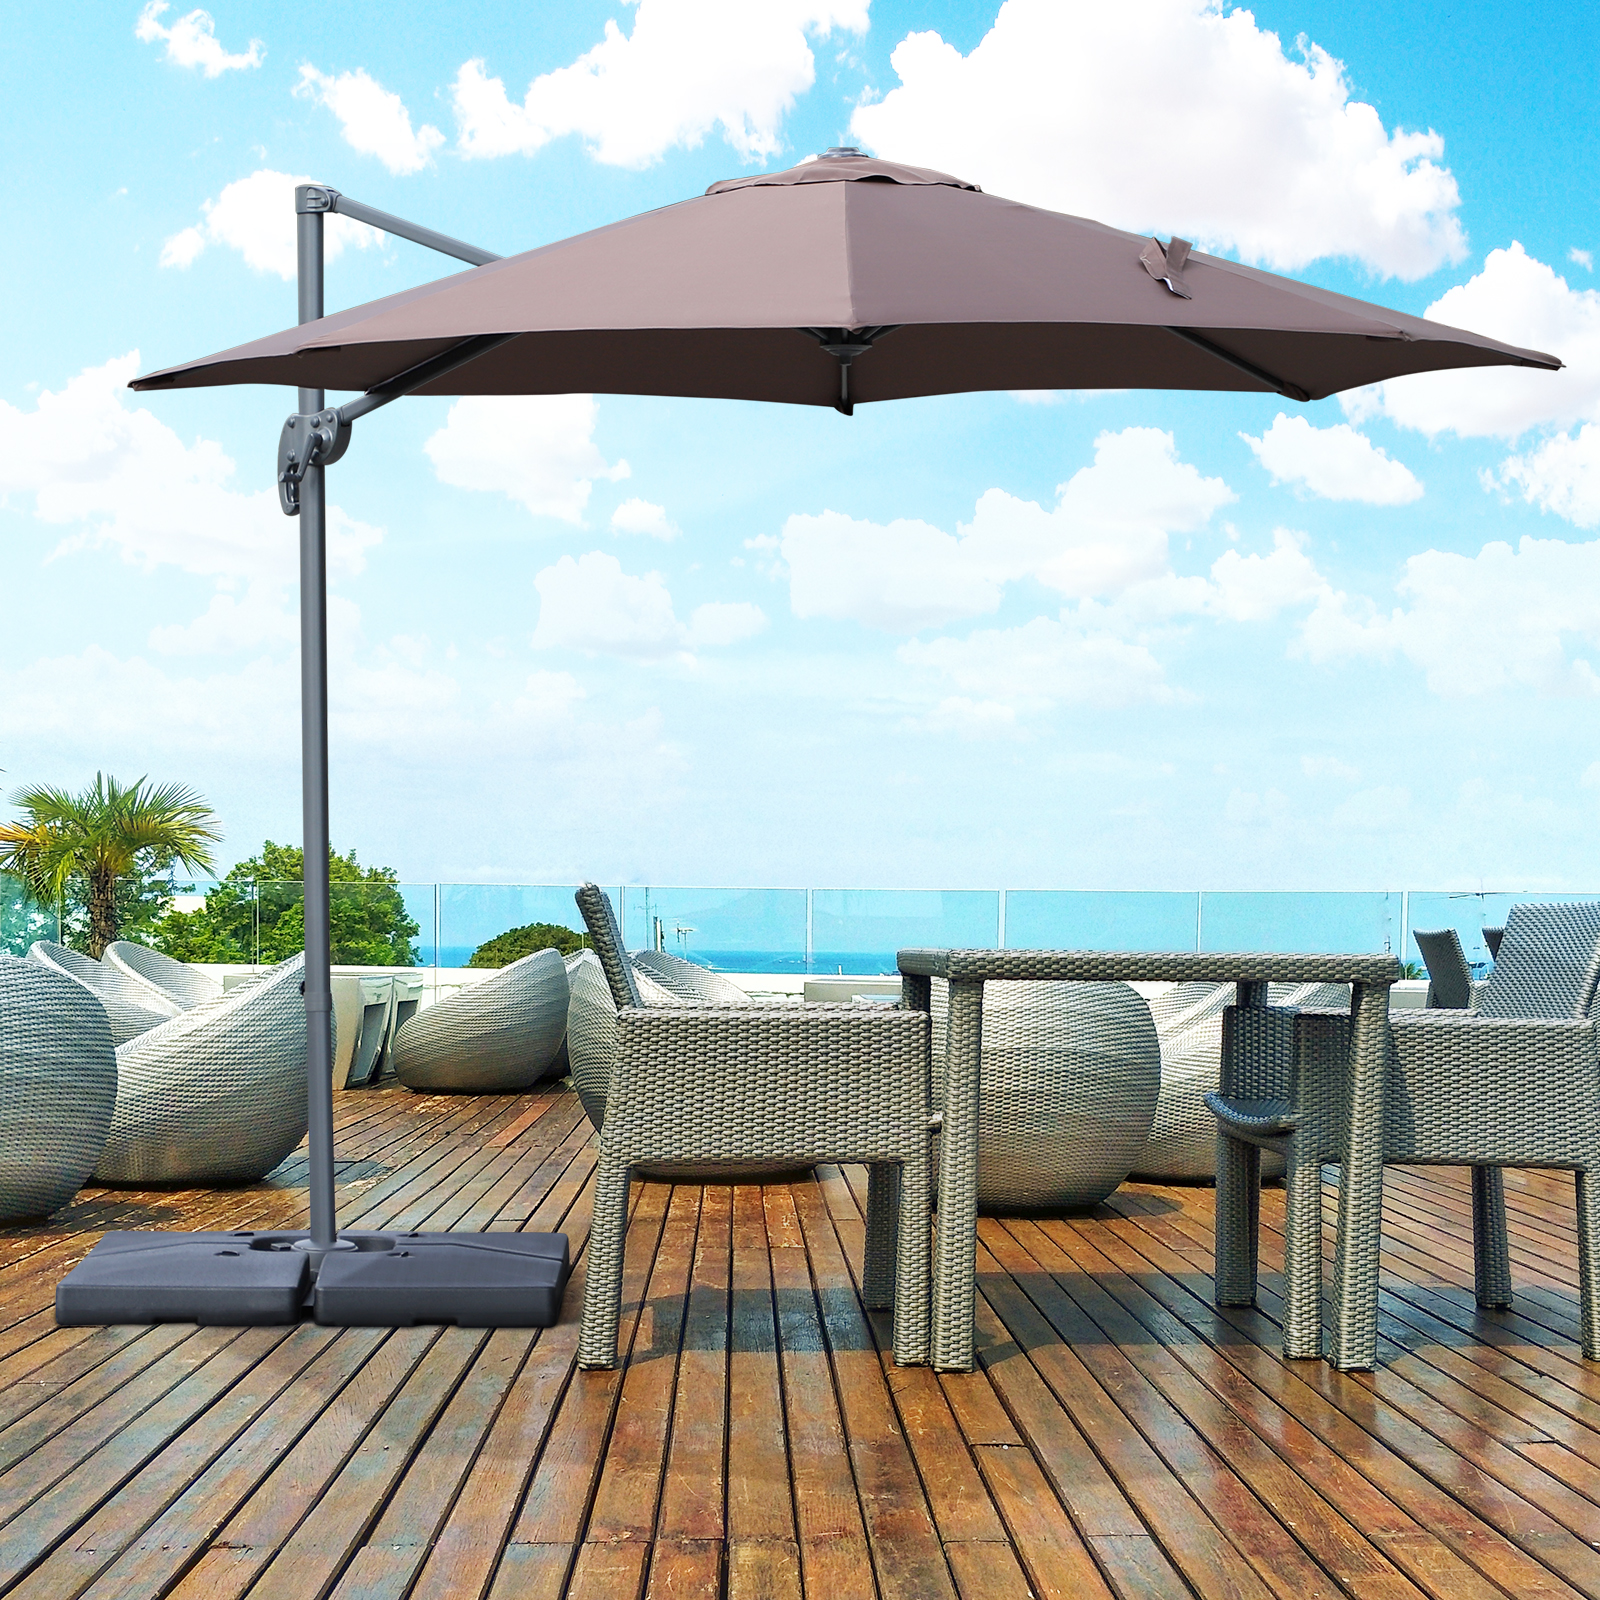 Details About Outsunny 9.5u0027 Cantilever Hanging Tilt Offset Patio Umbrella  W/ Base Stand Coffee